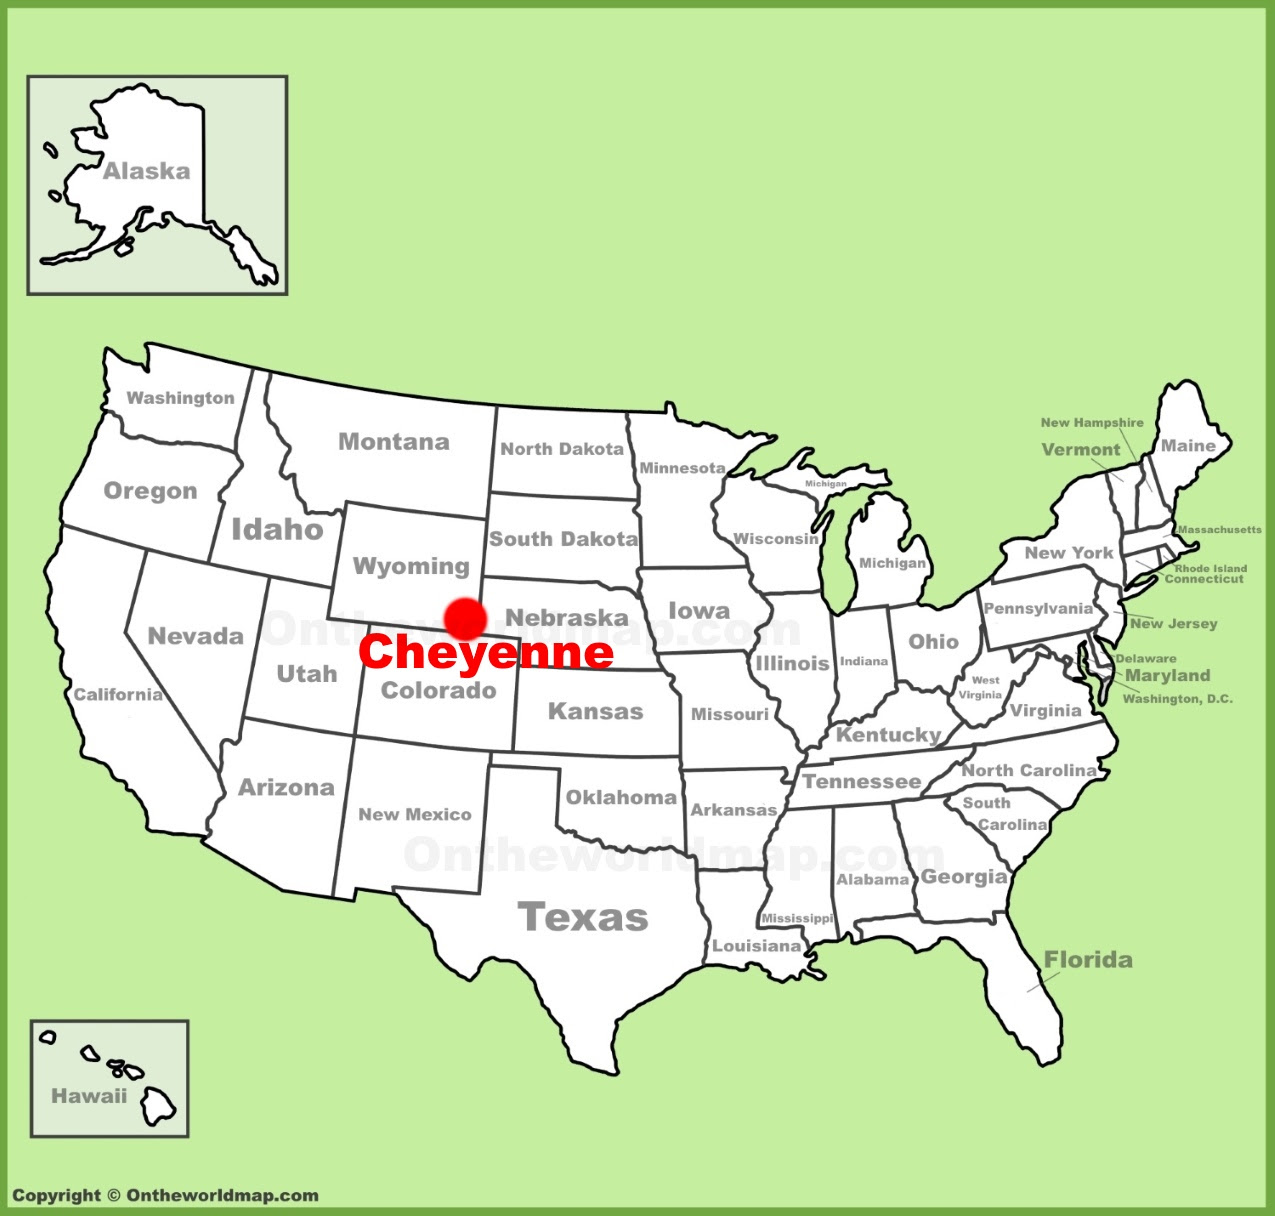 cheyenne location on the us map